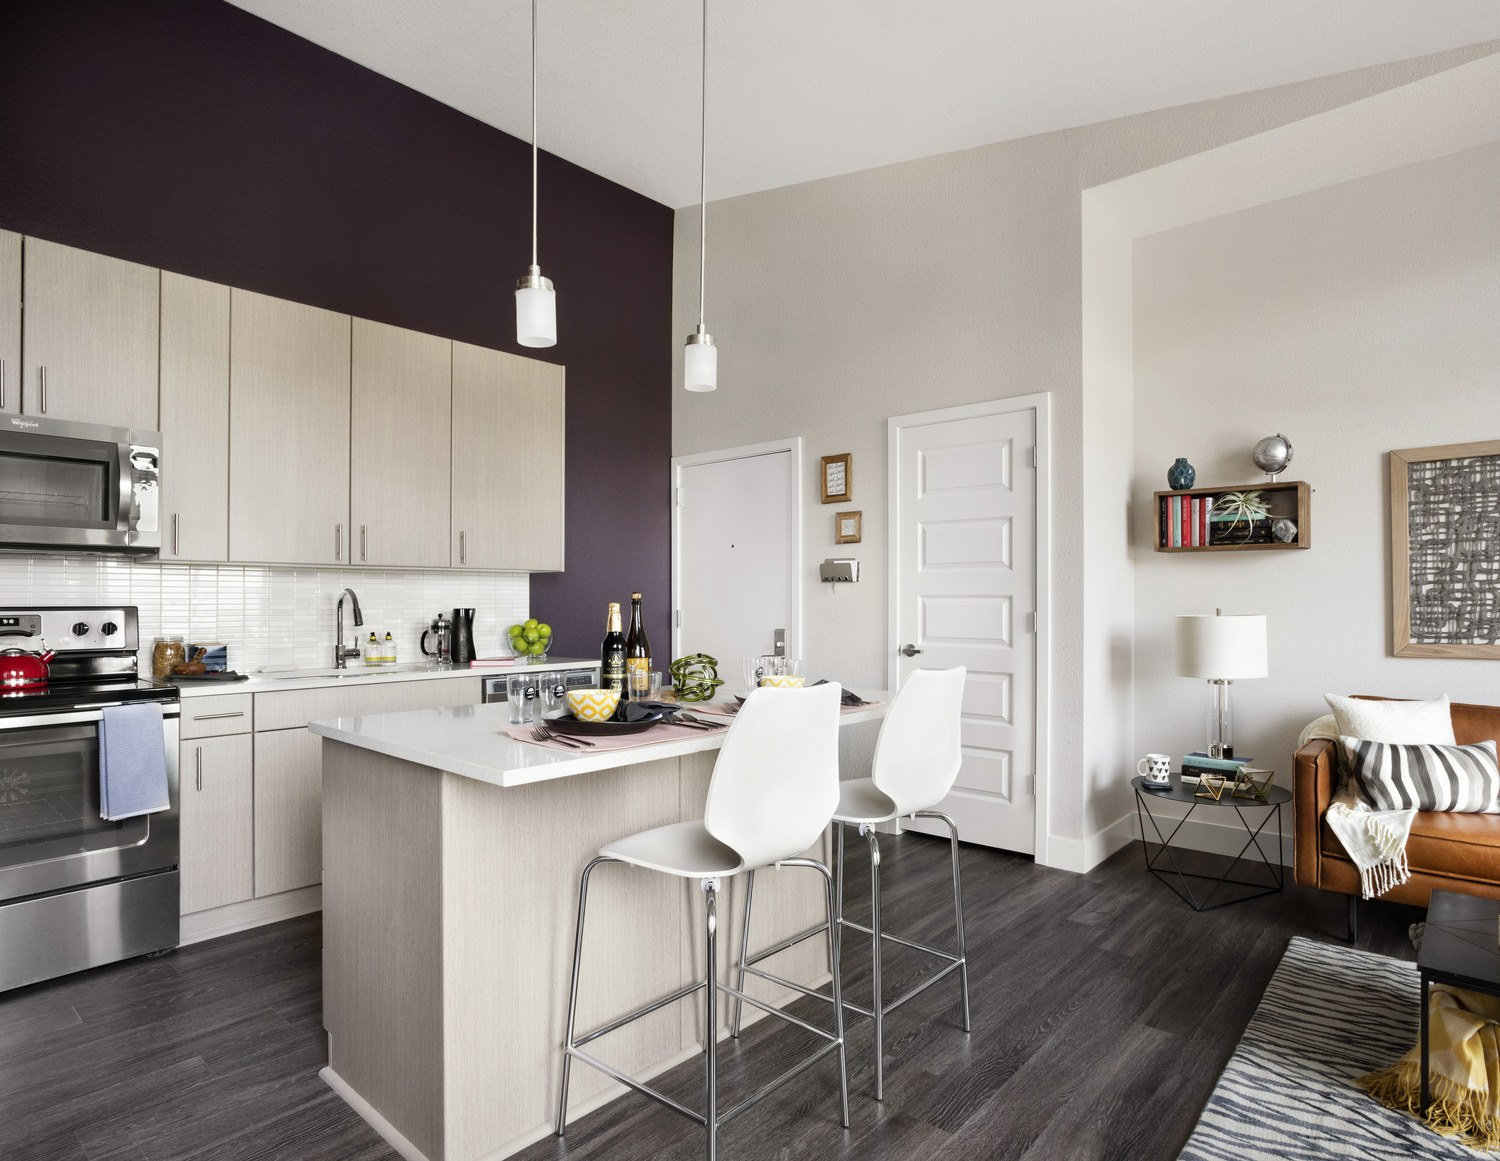 An open kitchen with a tall center island and stainless steel appliances.